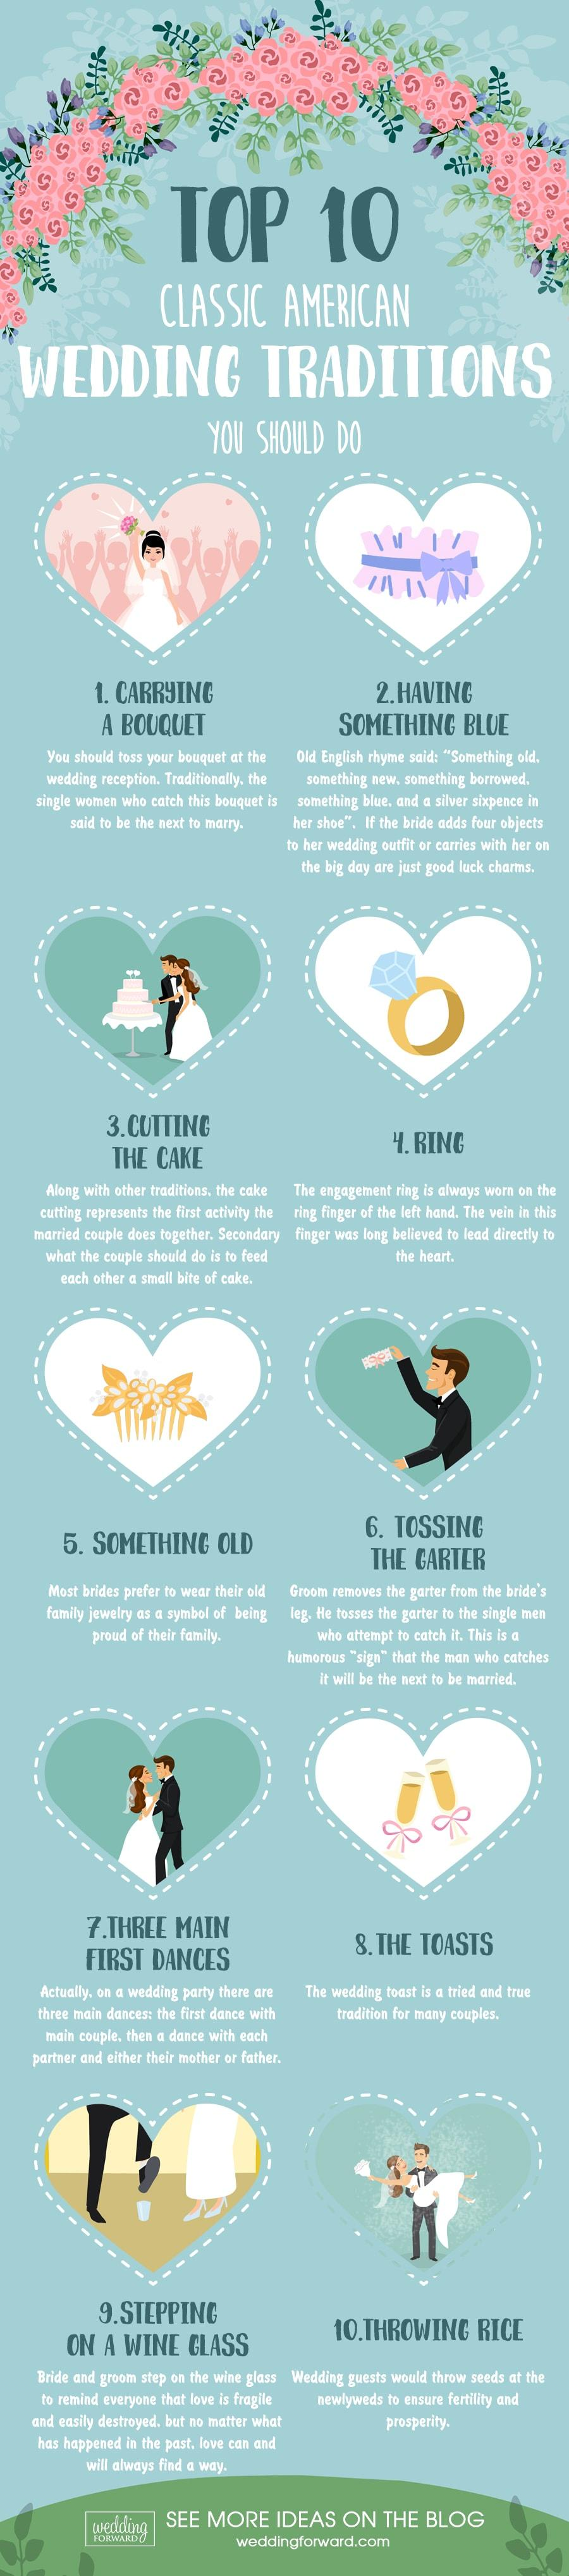 american wedding traditions infographic